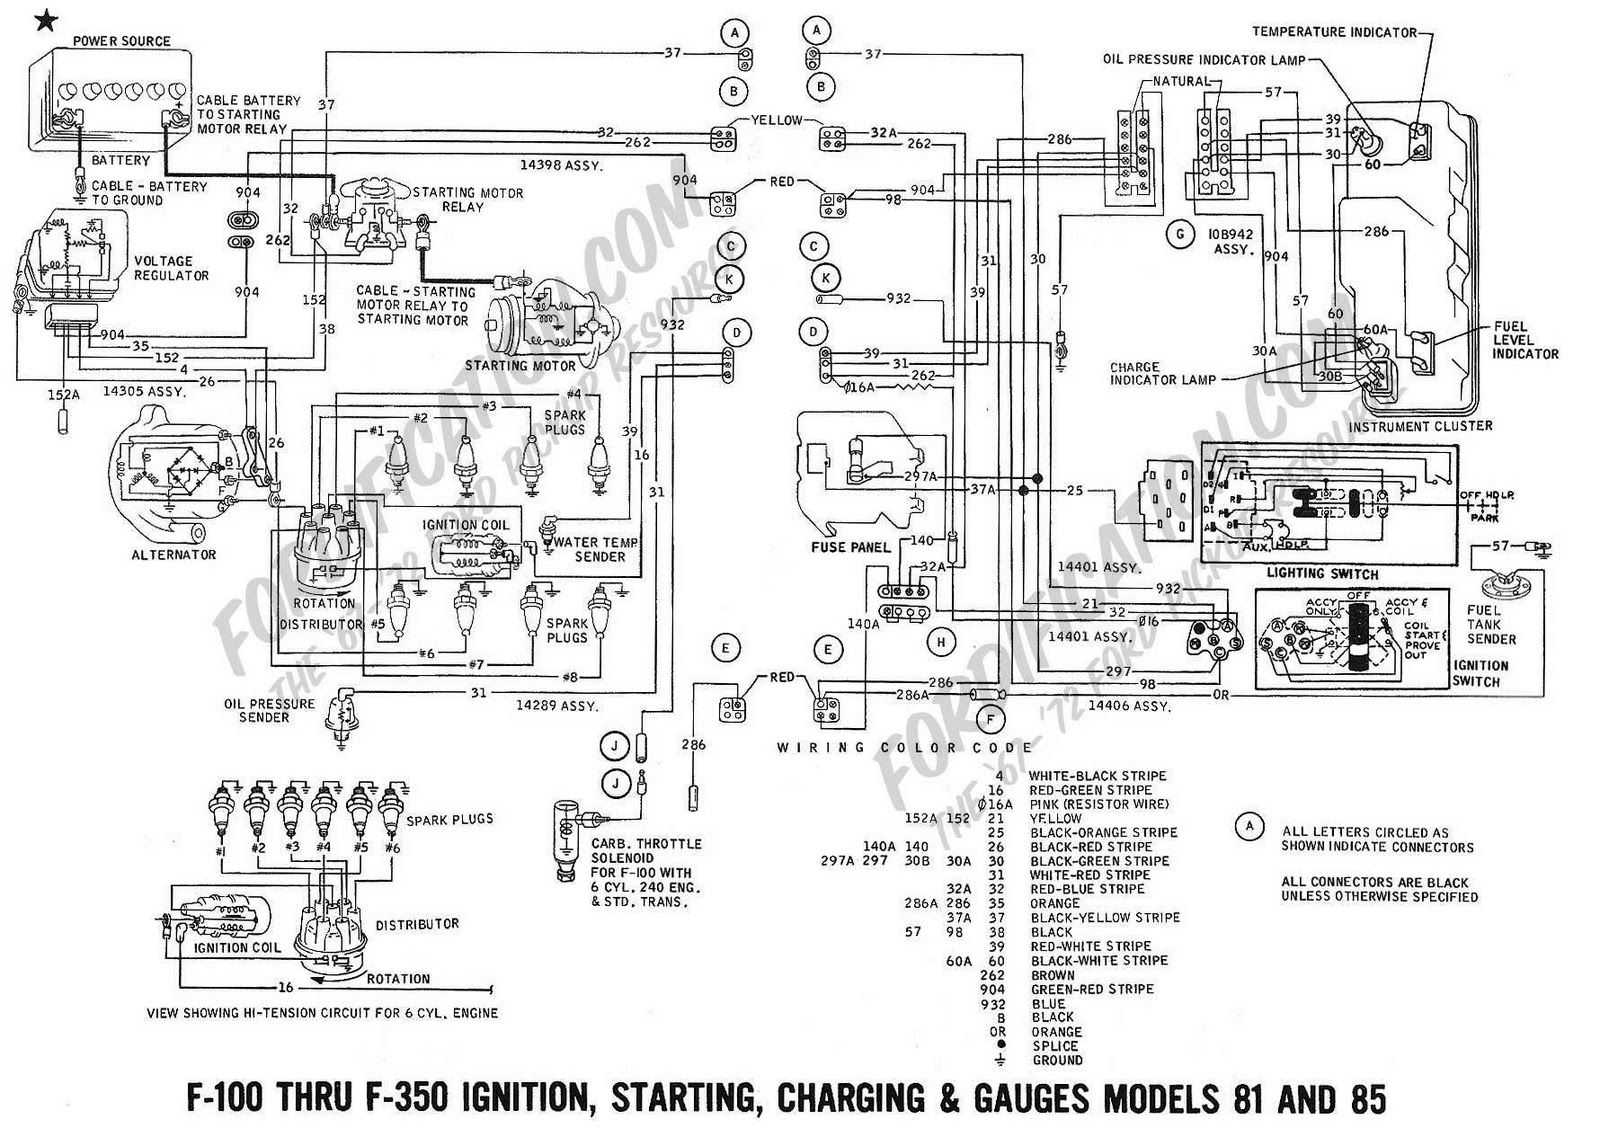 1970 ford f100 alternator wiring diagram - wiring diagram schematics 1967 ford f100 wiring diagram  wiring diagram schematics